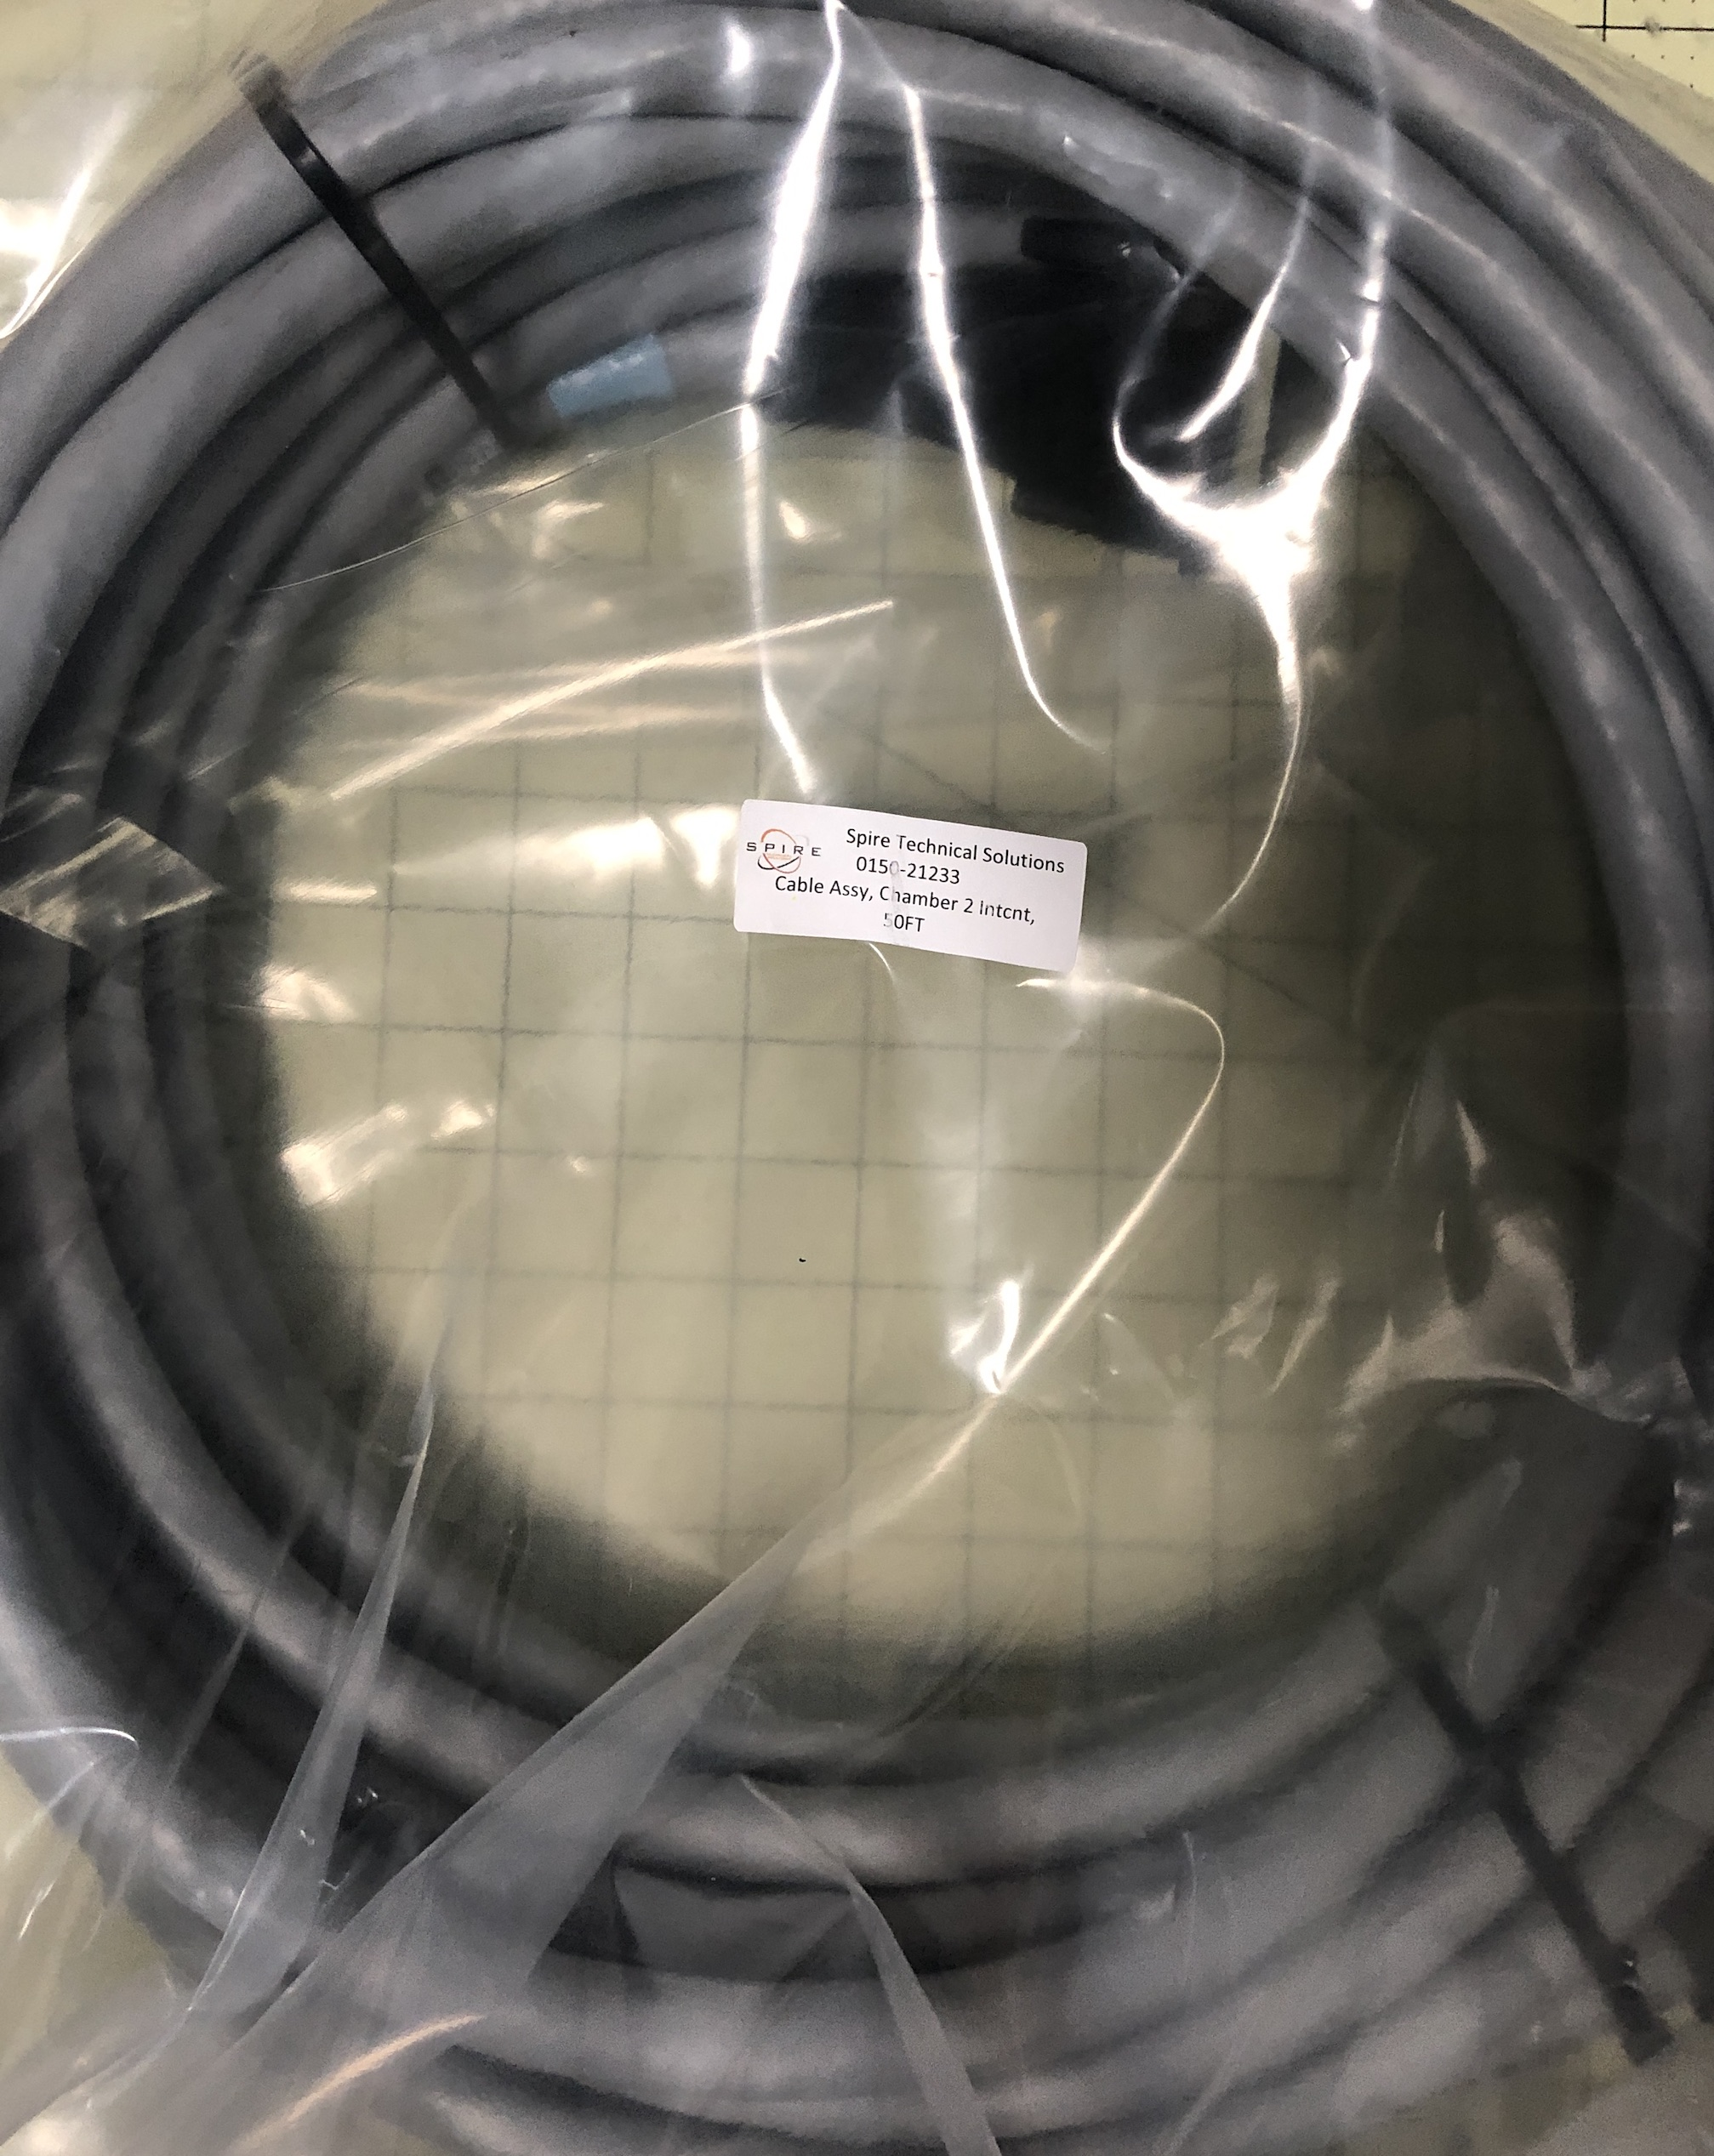 Cable Assy, Chamber 2 Intcnt, 50FT